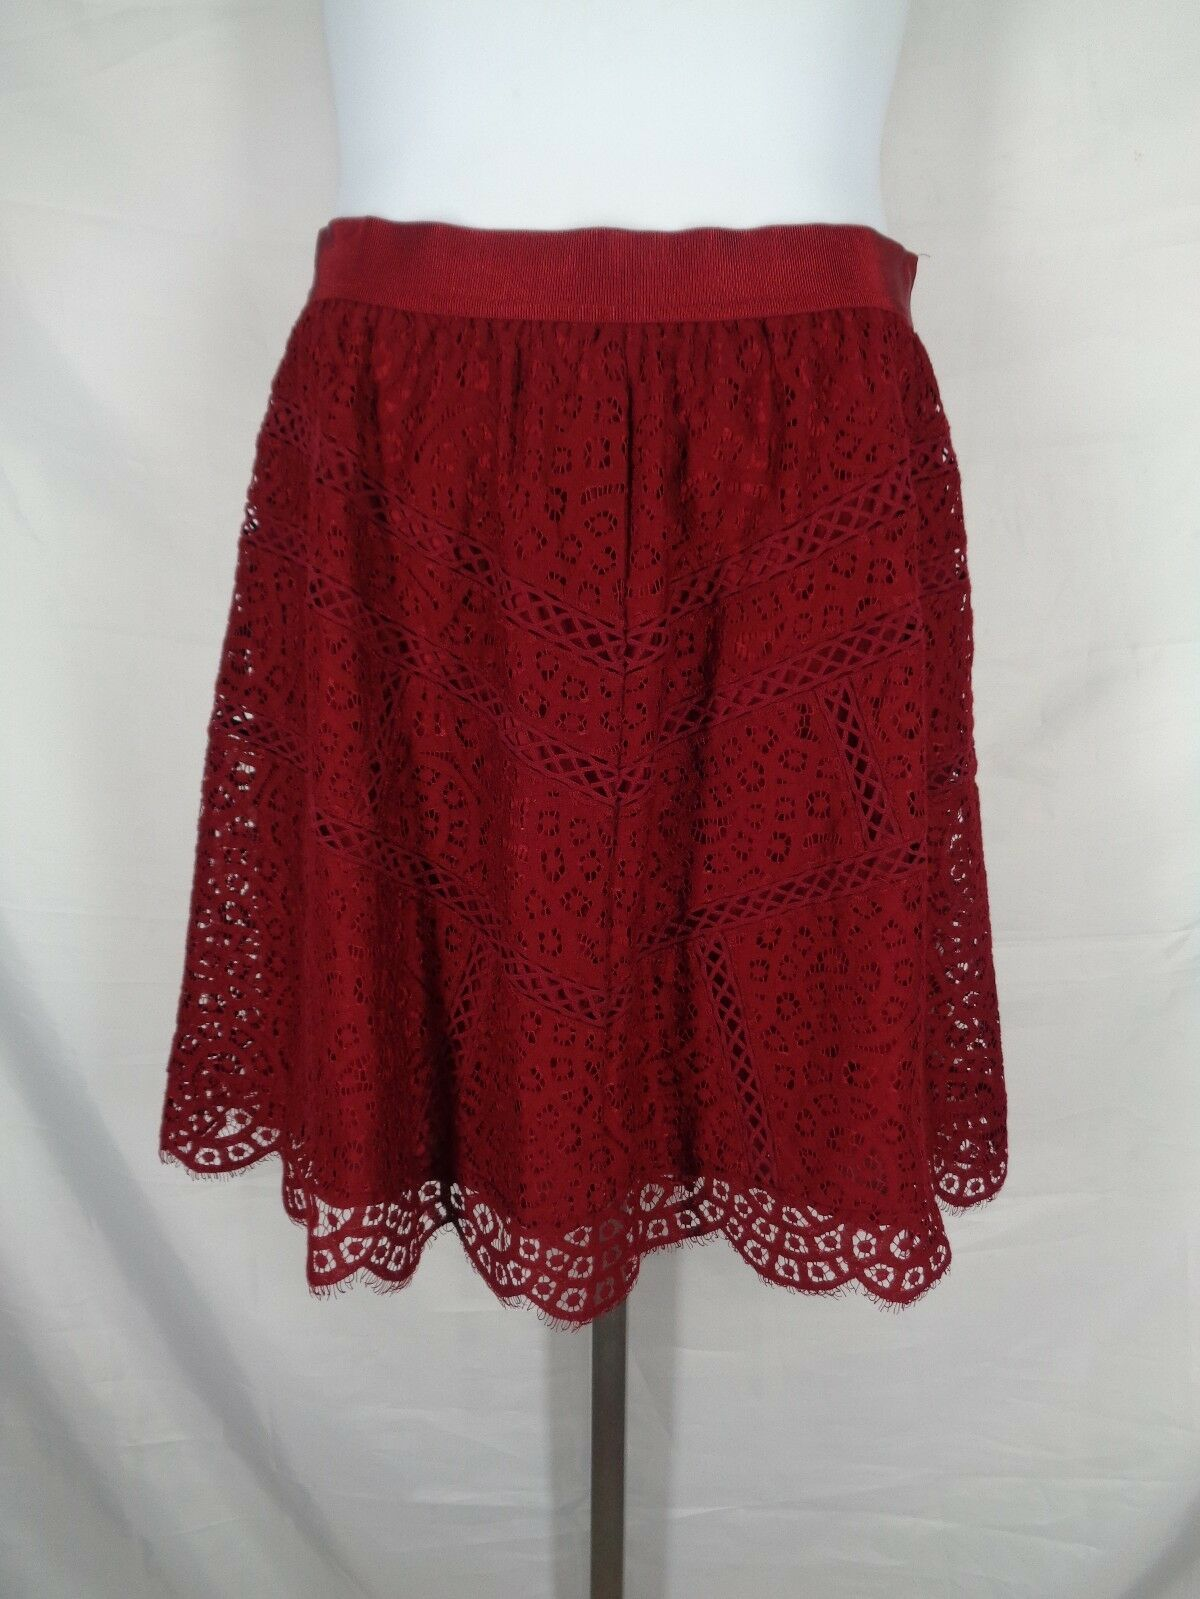 Ann Taylor Lace Skirt Size 14 Burgundy Wine Red Scallop Hem Knee Length New